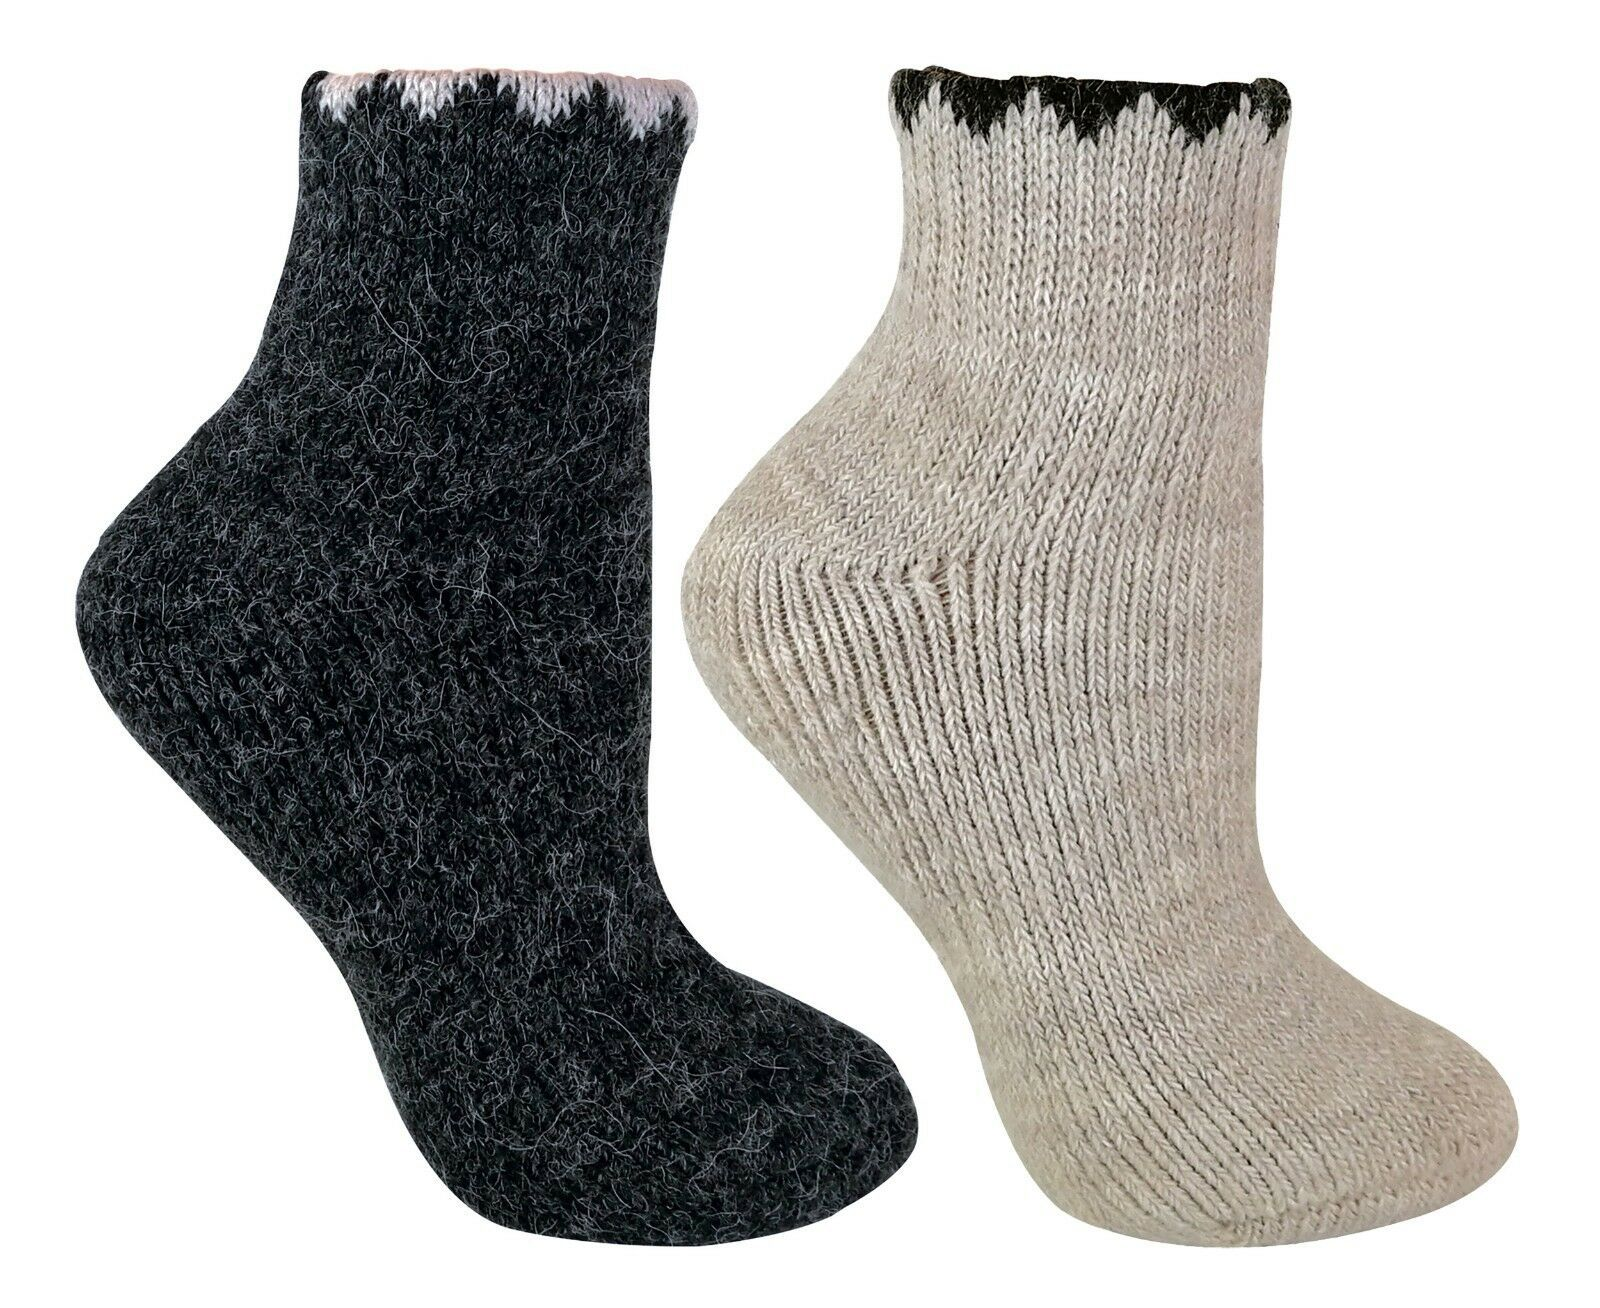 Mens Womens Rabbit Wool Thermal Socks Ultra Warm Thick Boot Socks 6-pack